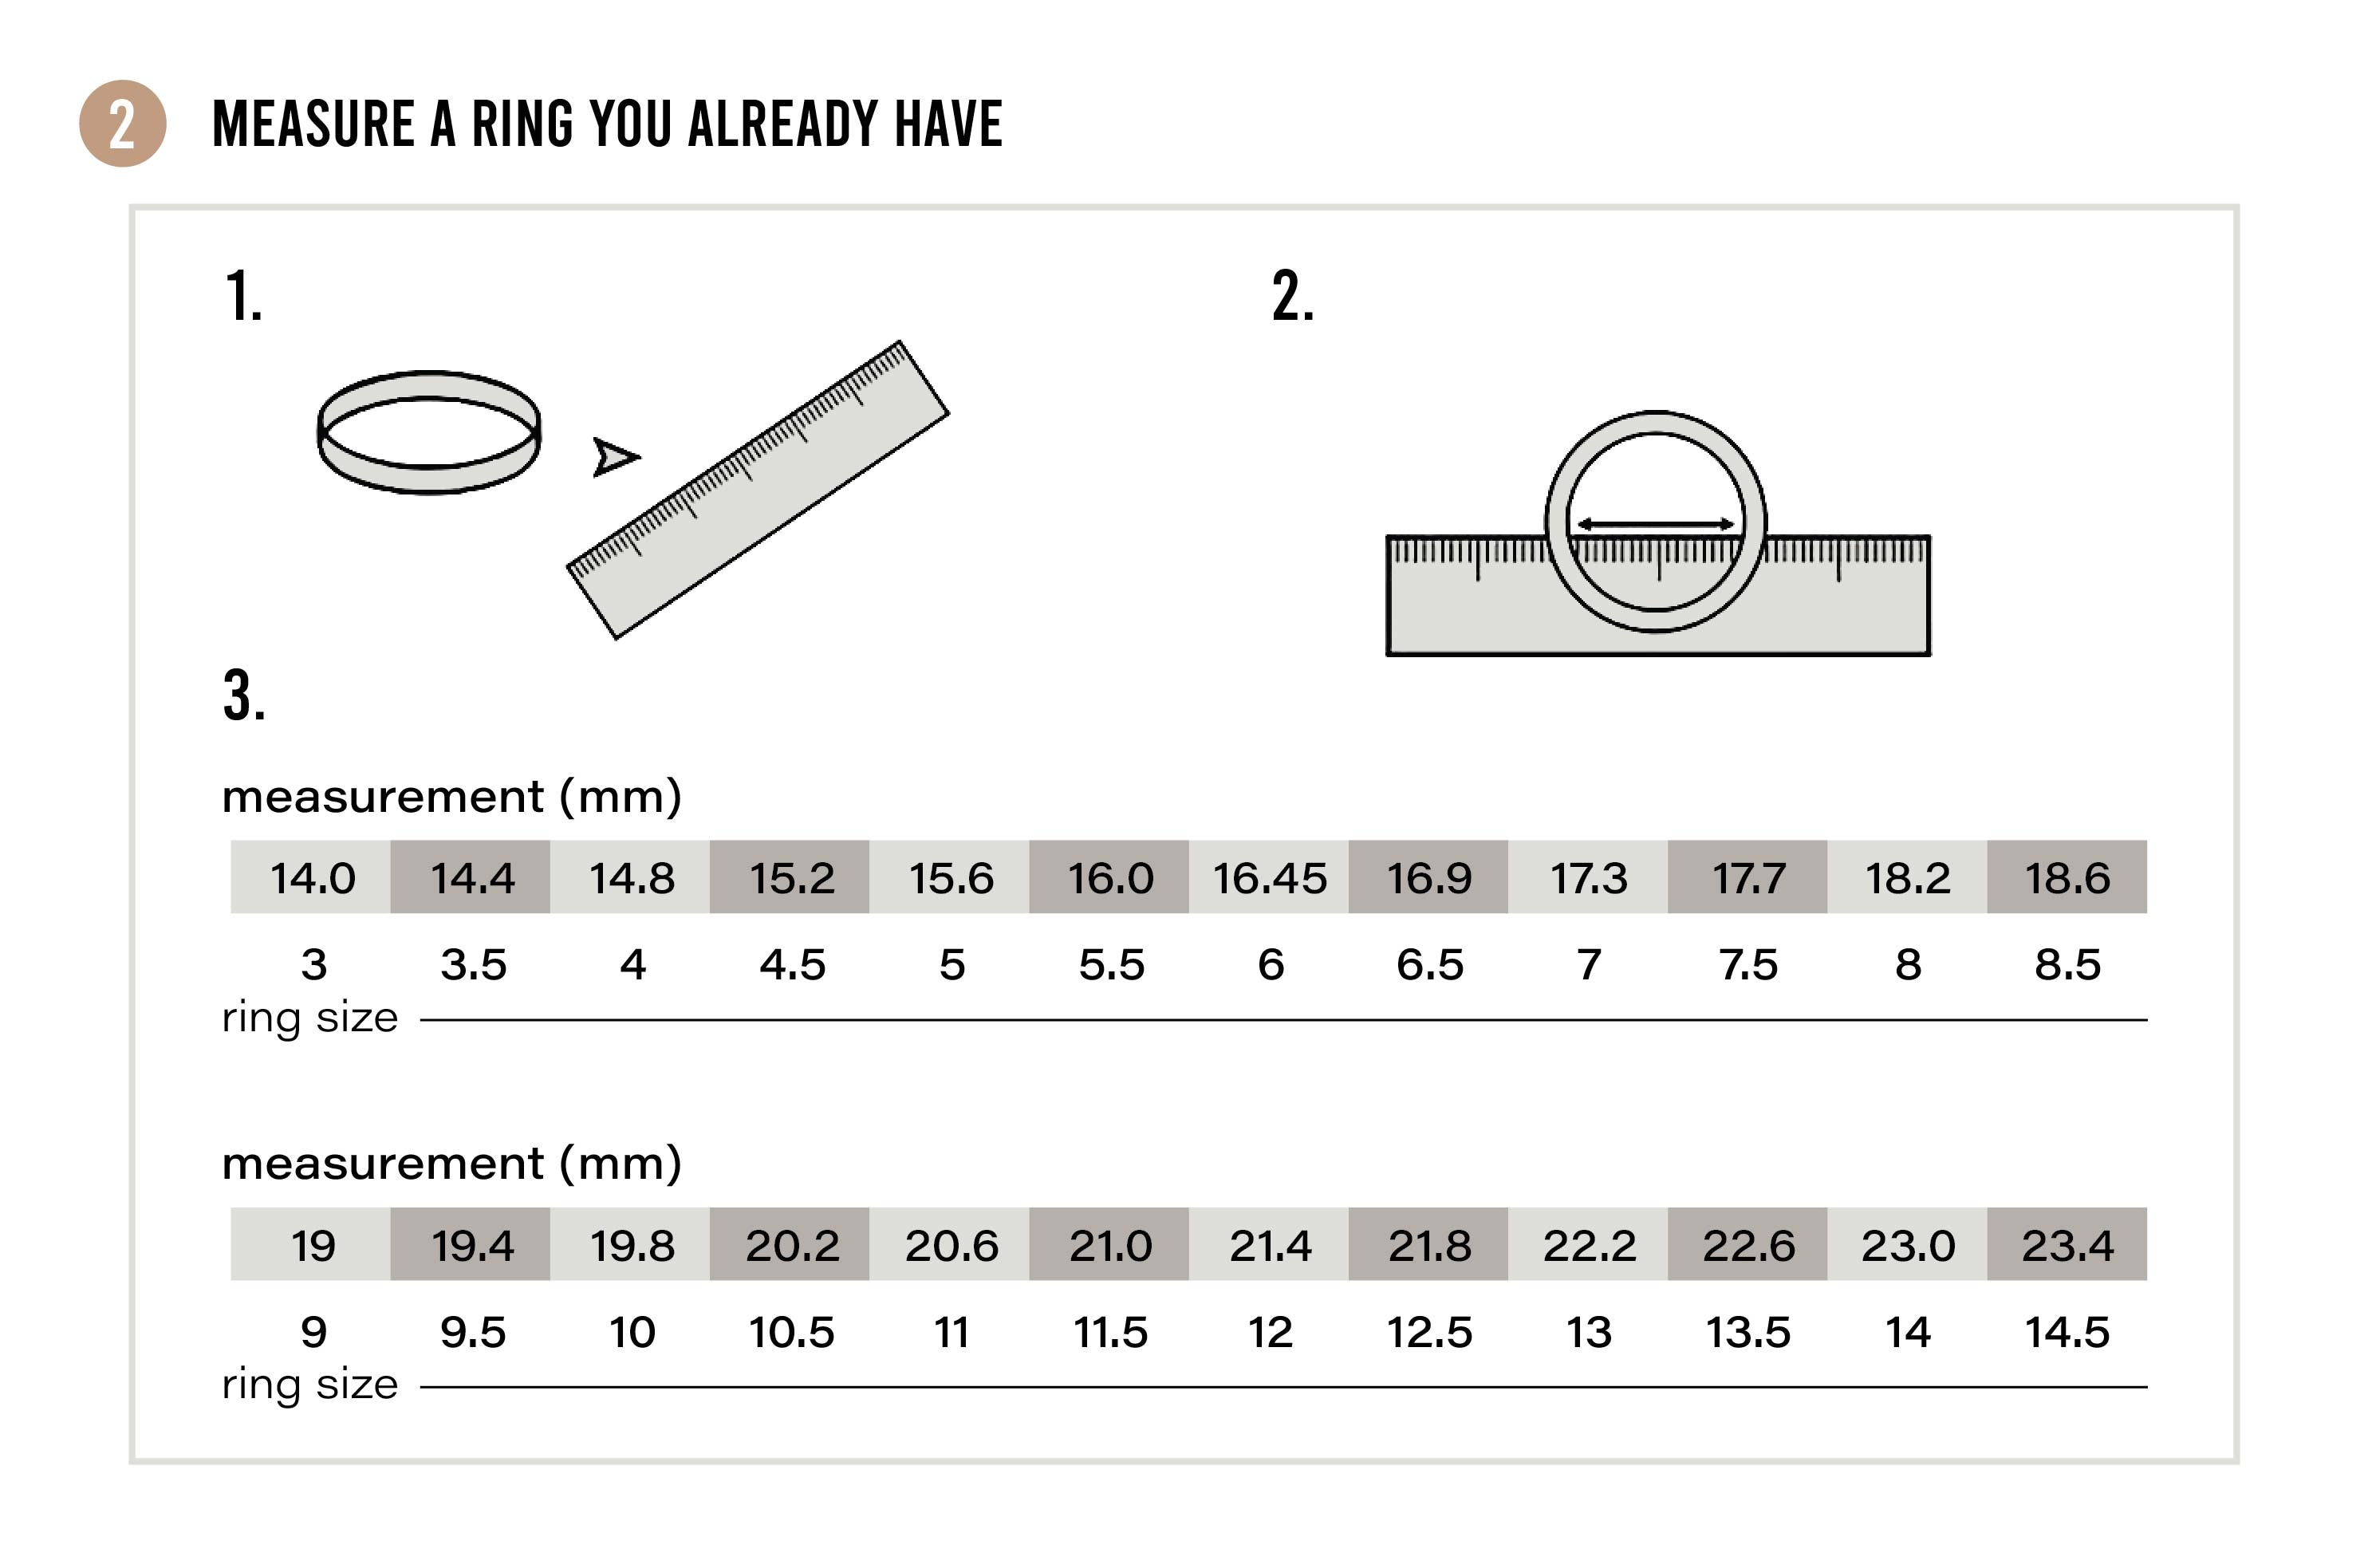 Measure a ring you already have